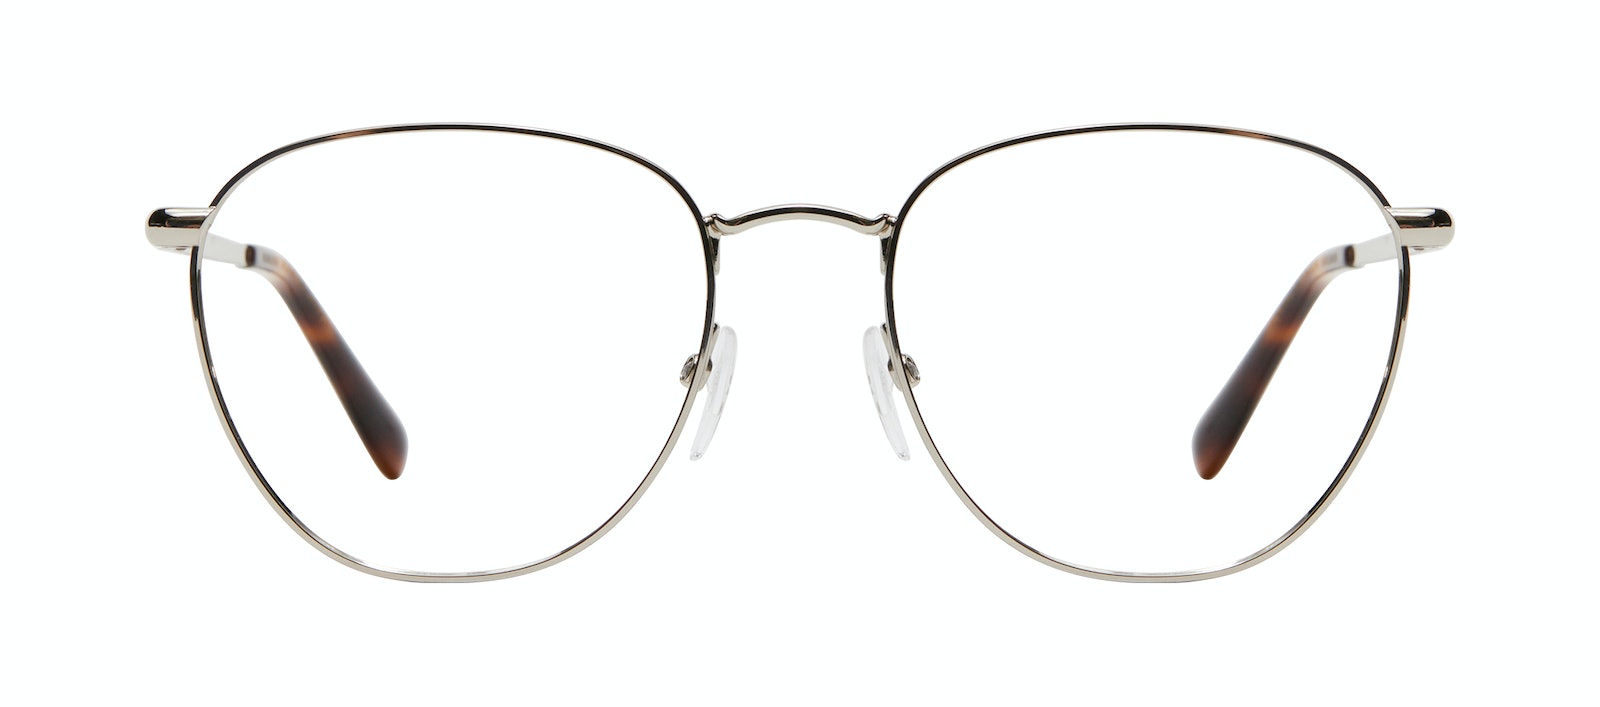 Affordable Fashion Glasses Round Eyeglasses Women Radiant L Silver Front